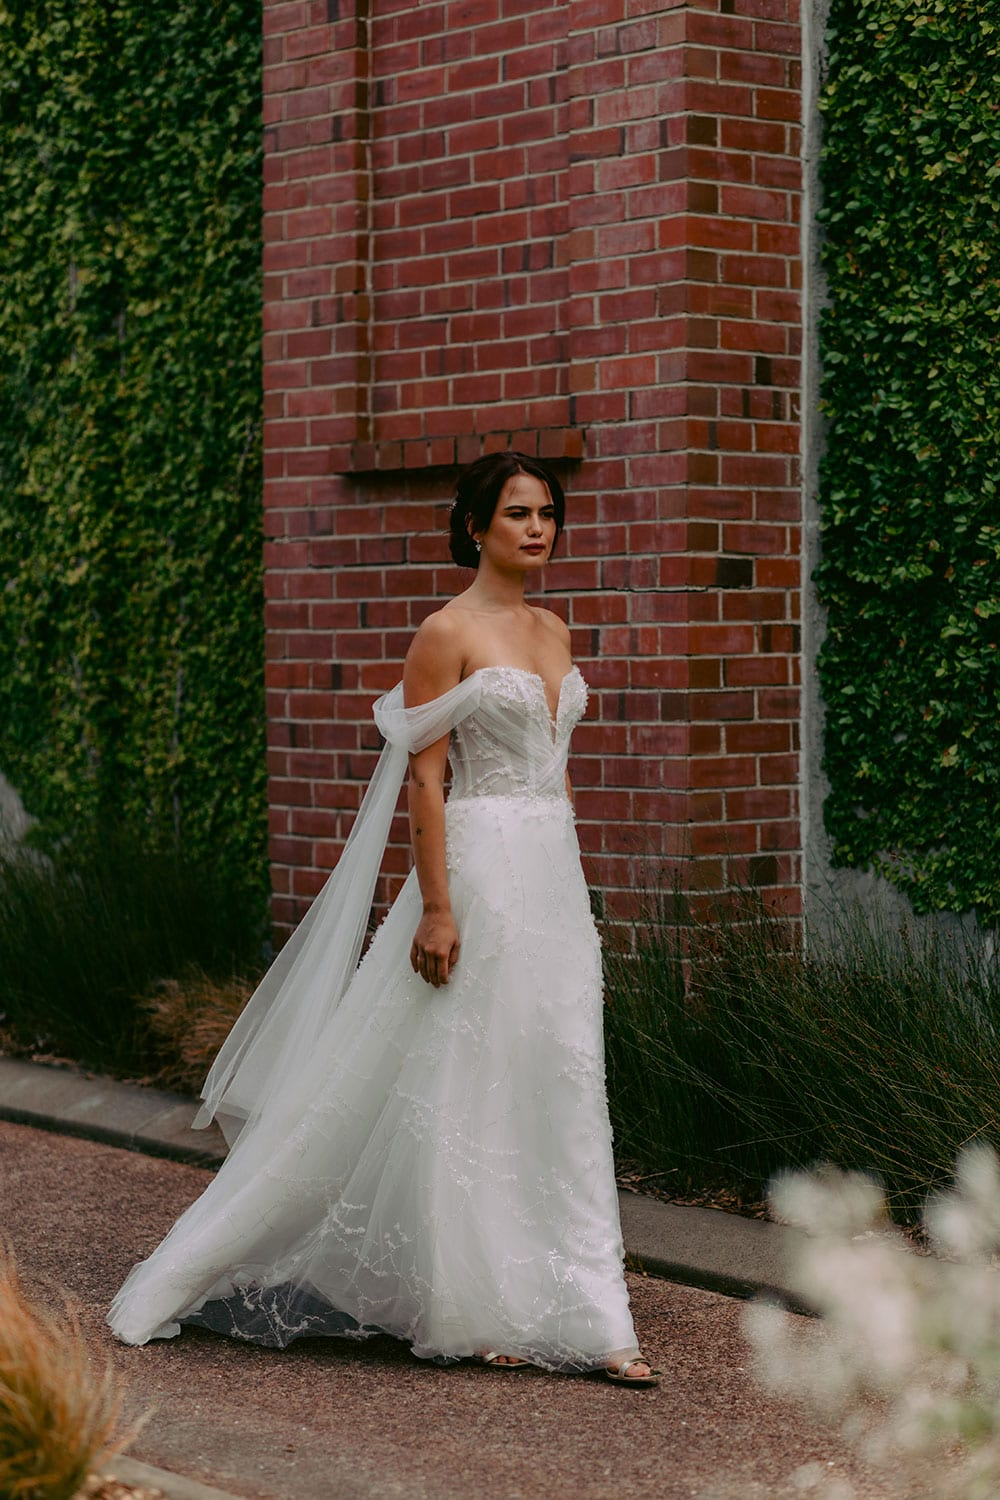 Evie Wedding gown from Vinka Design - Dreamy semi-sheer wedding dress with lace embroidery and beading. The bodice is structured, with hand-appliqued lace and draped with tulle to integrate modern elements with classic design. Model wearing gown walking in front of brick wall.